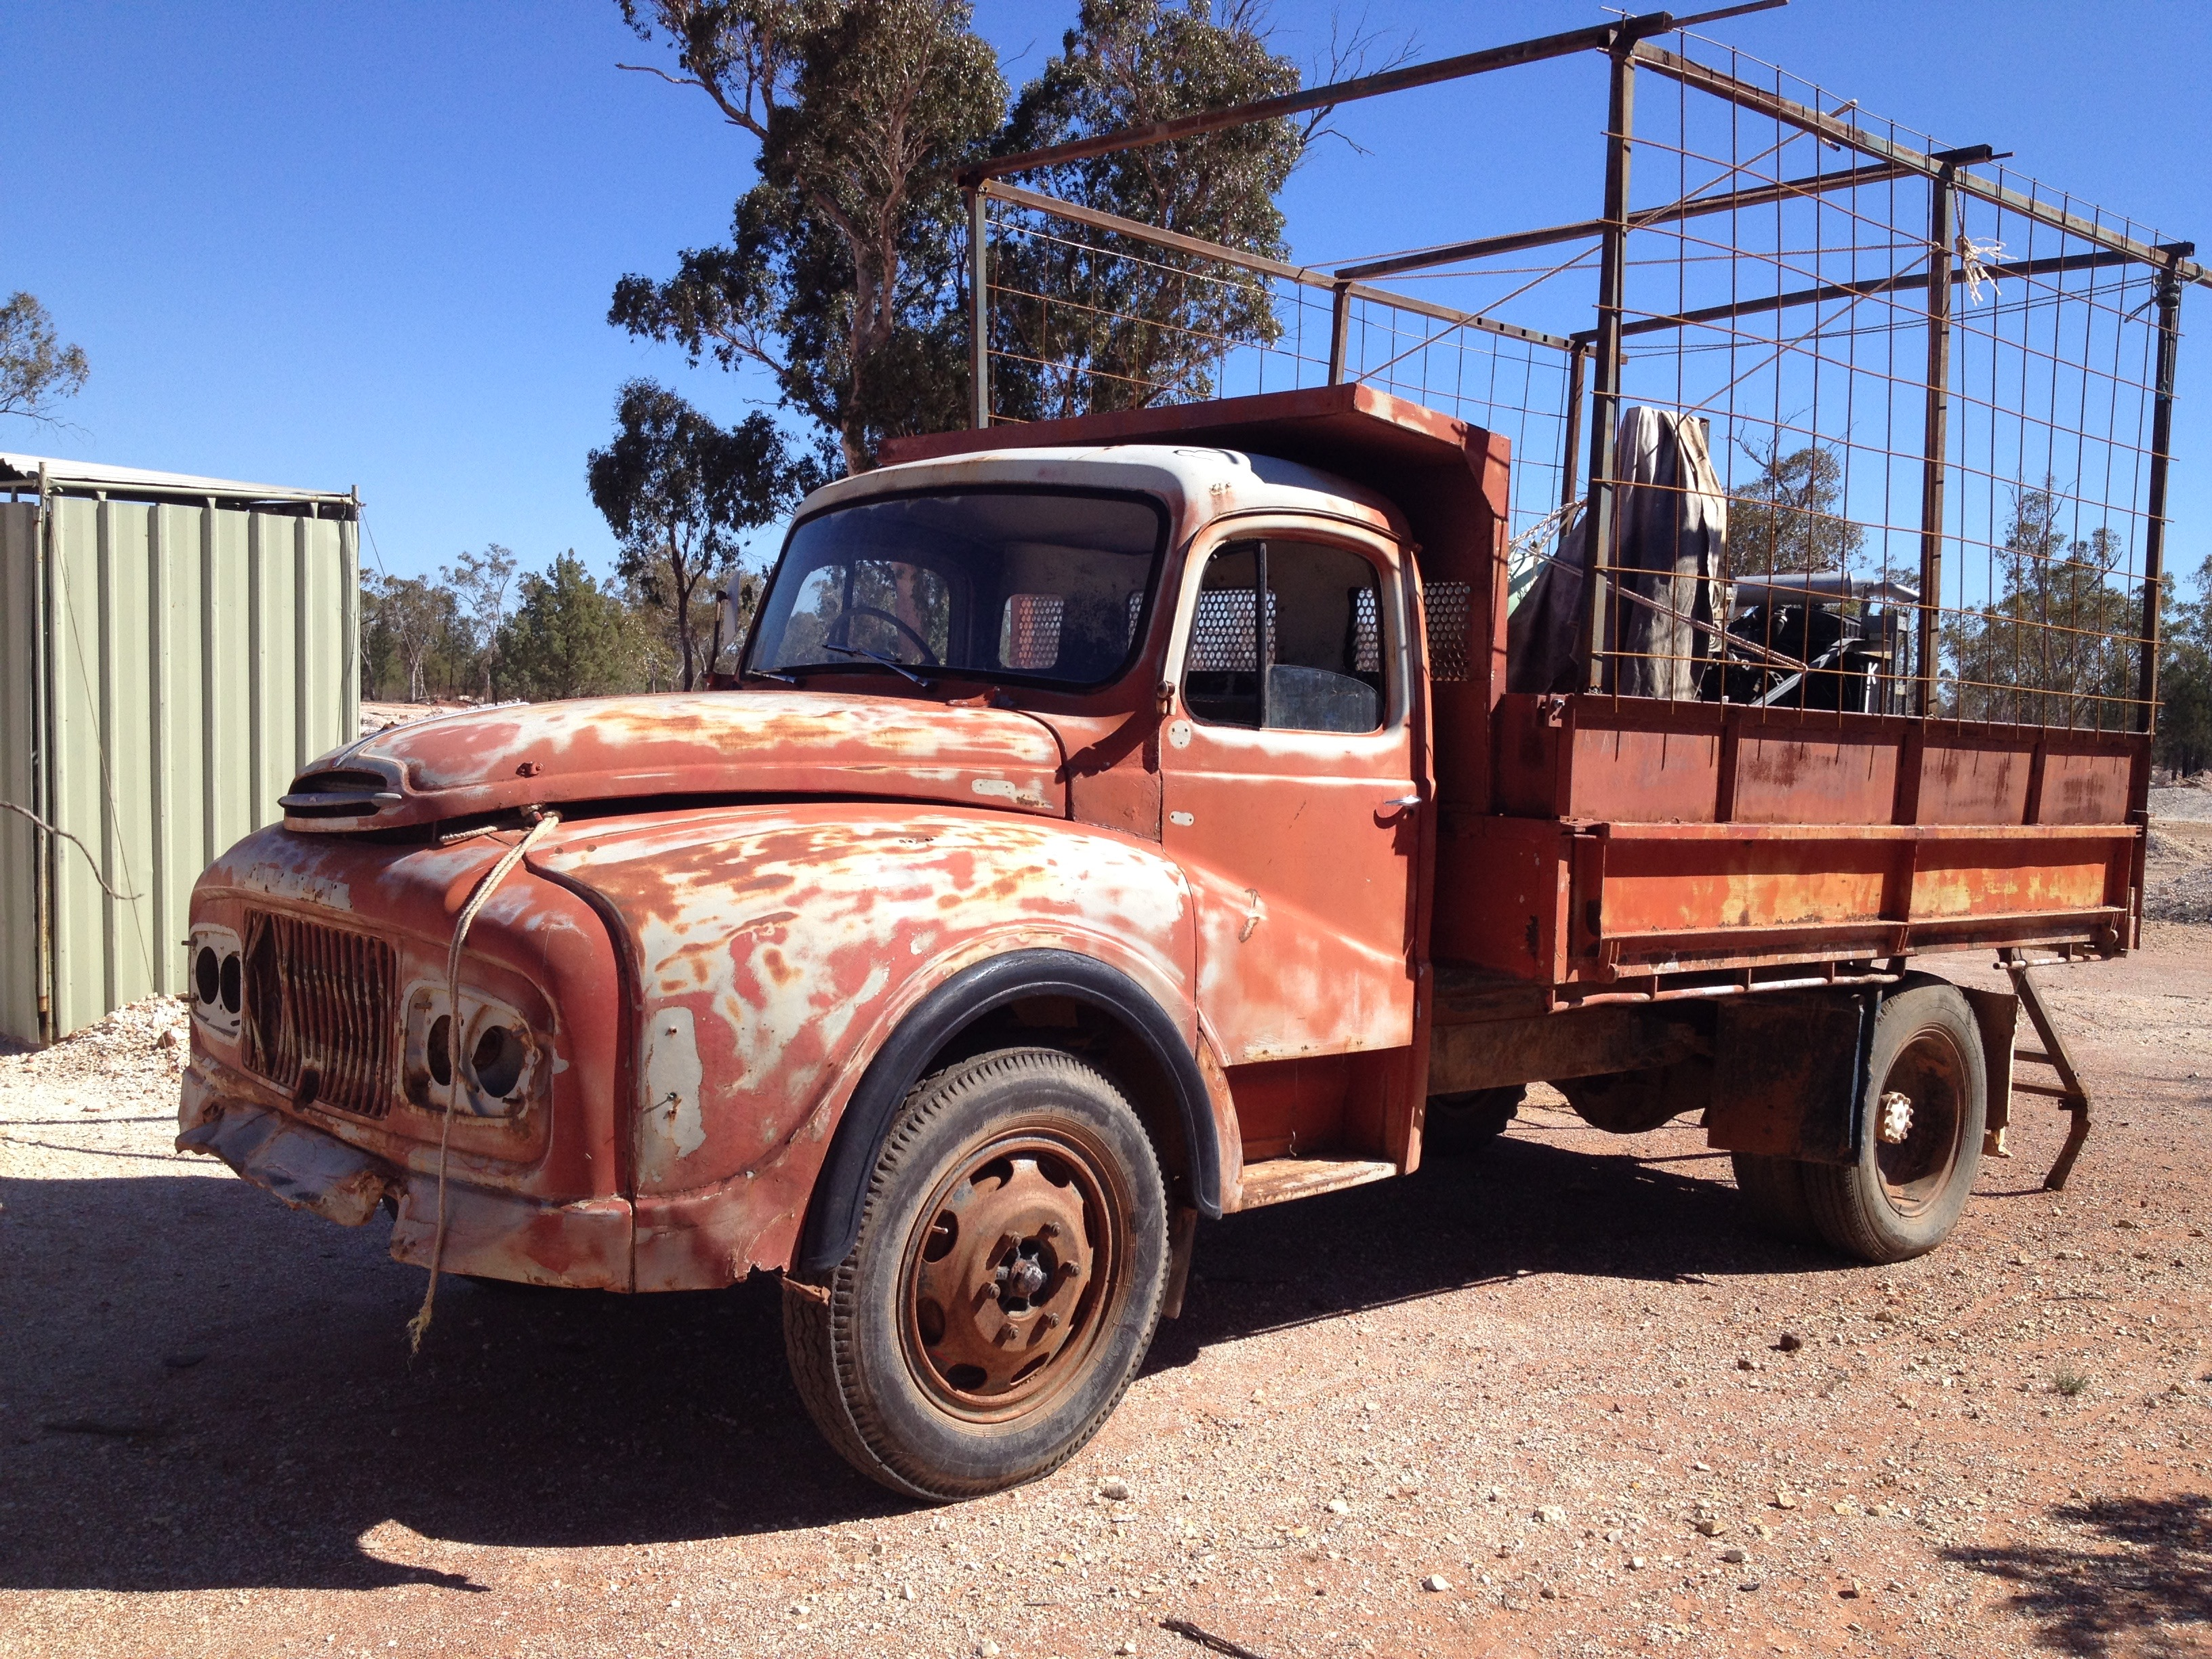 Old Truck used regularly